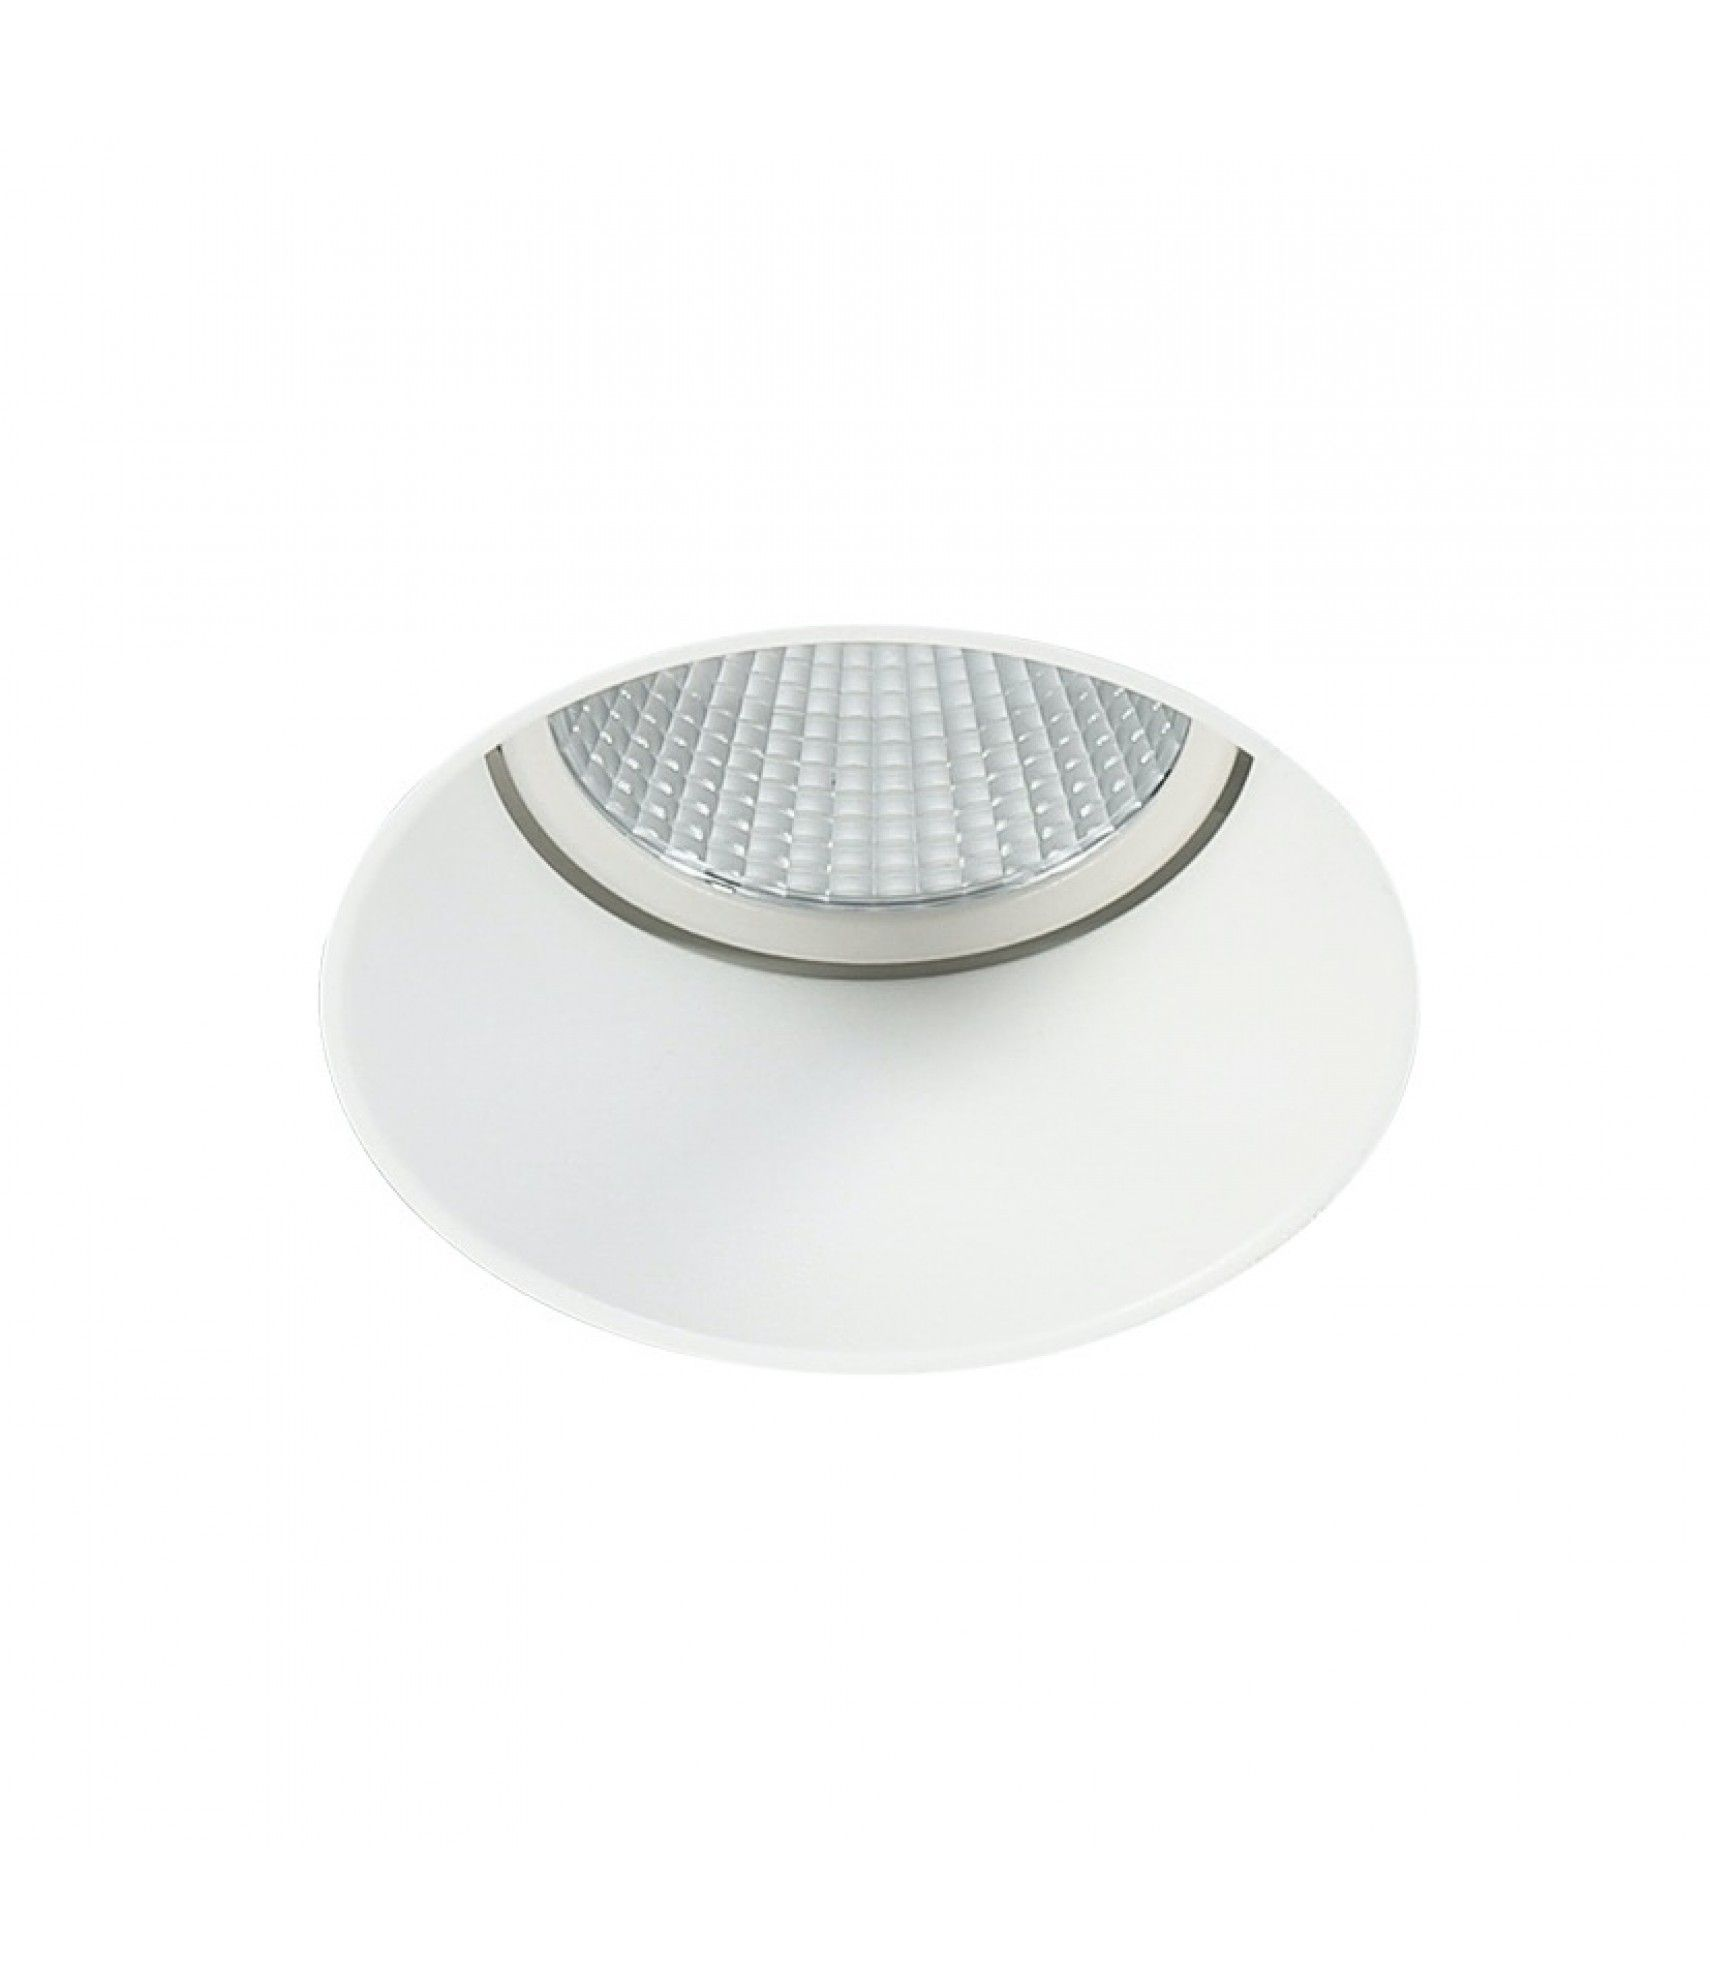 Lucretia Lighting Ultra 850 Round Trimless Recessed Dimmable LED Downlight 12W